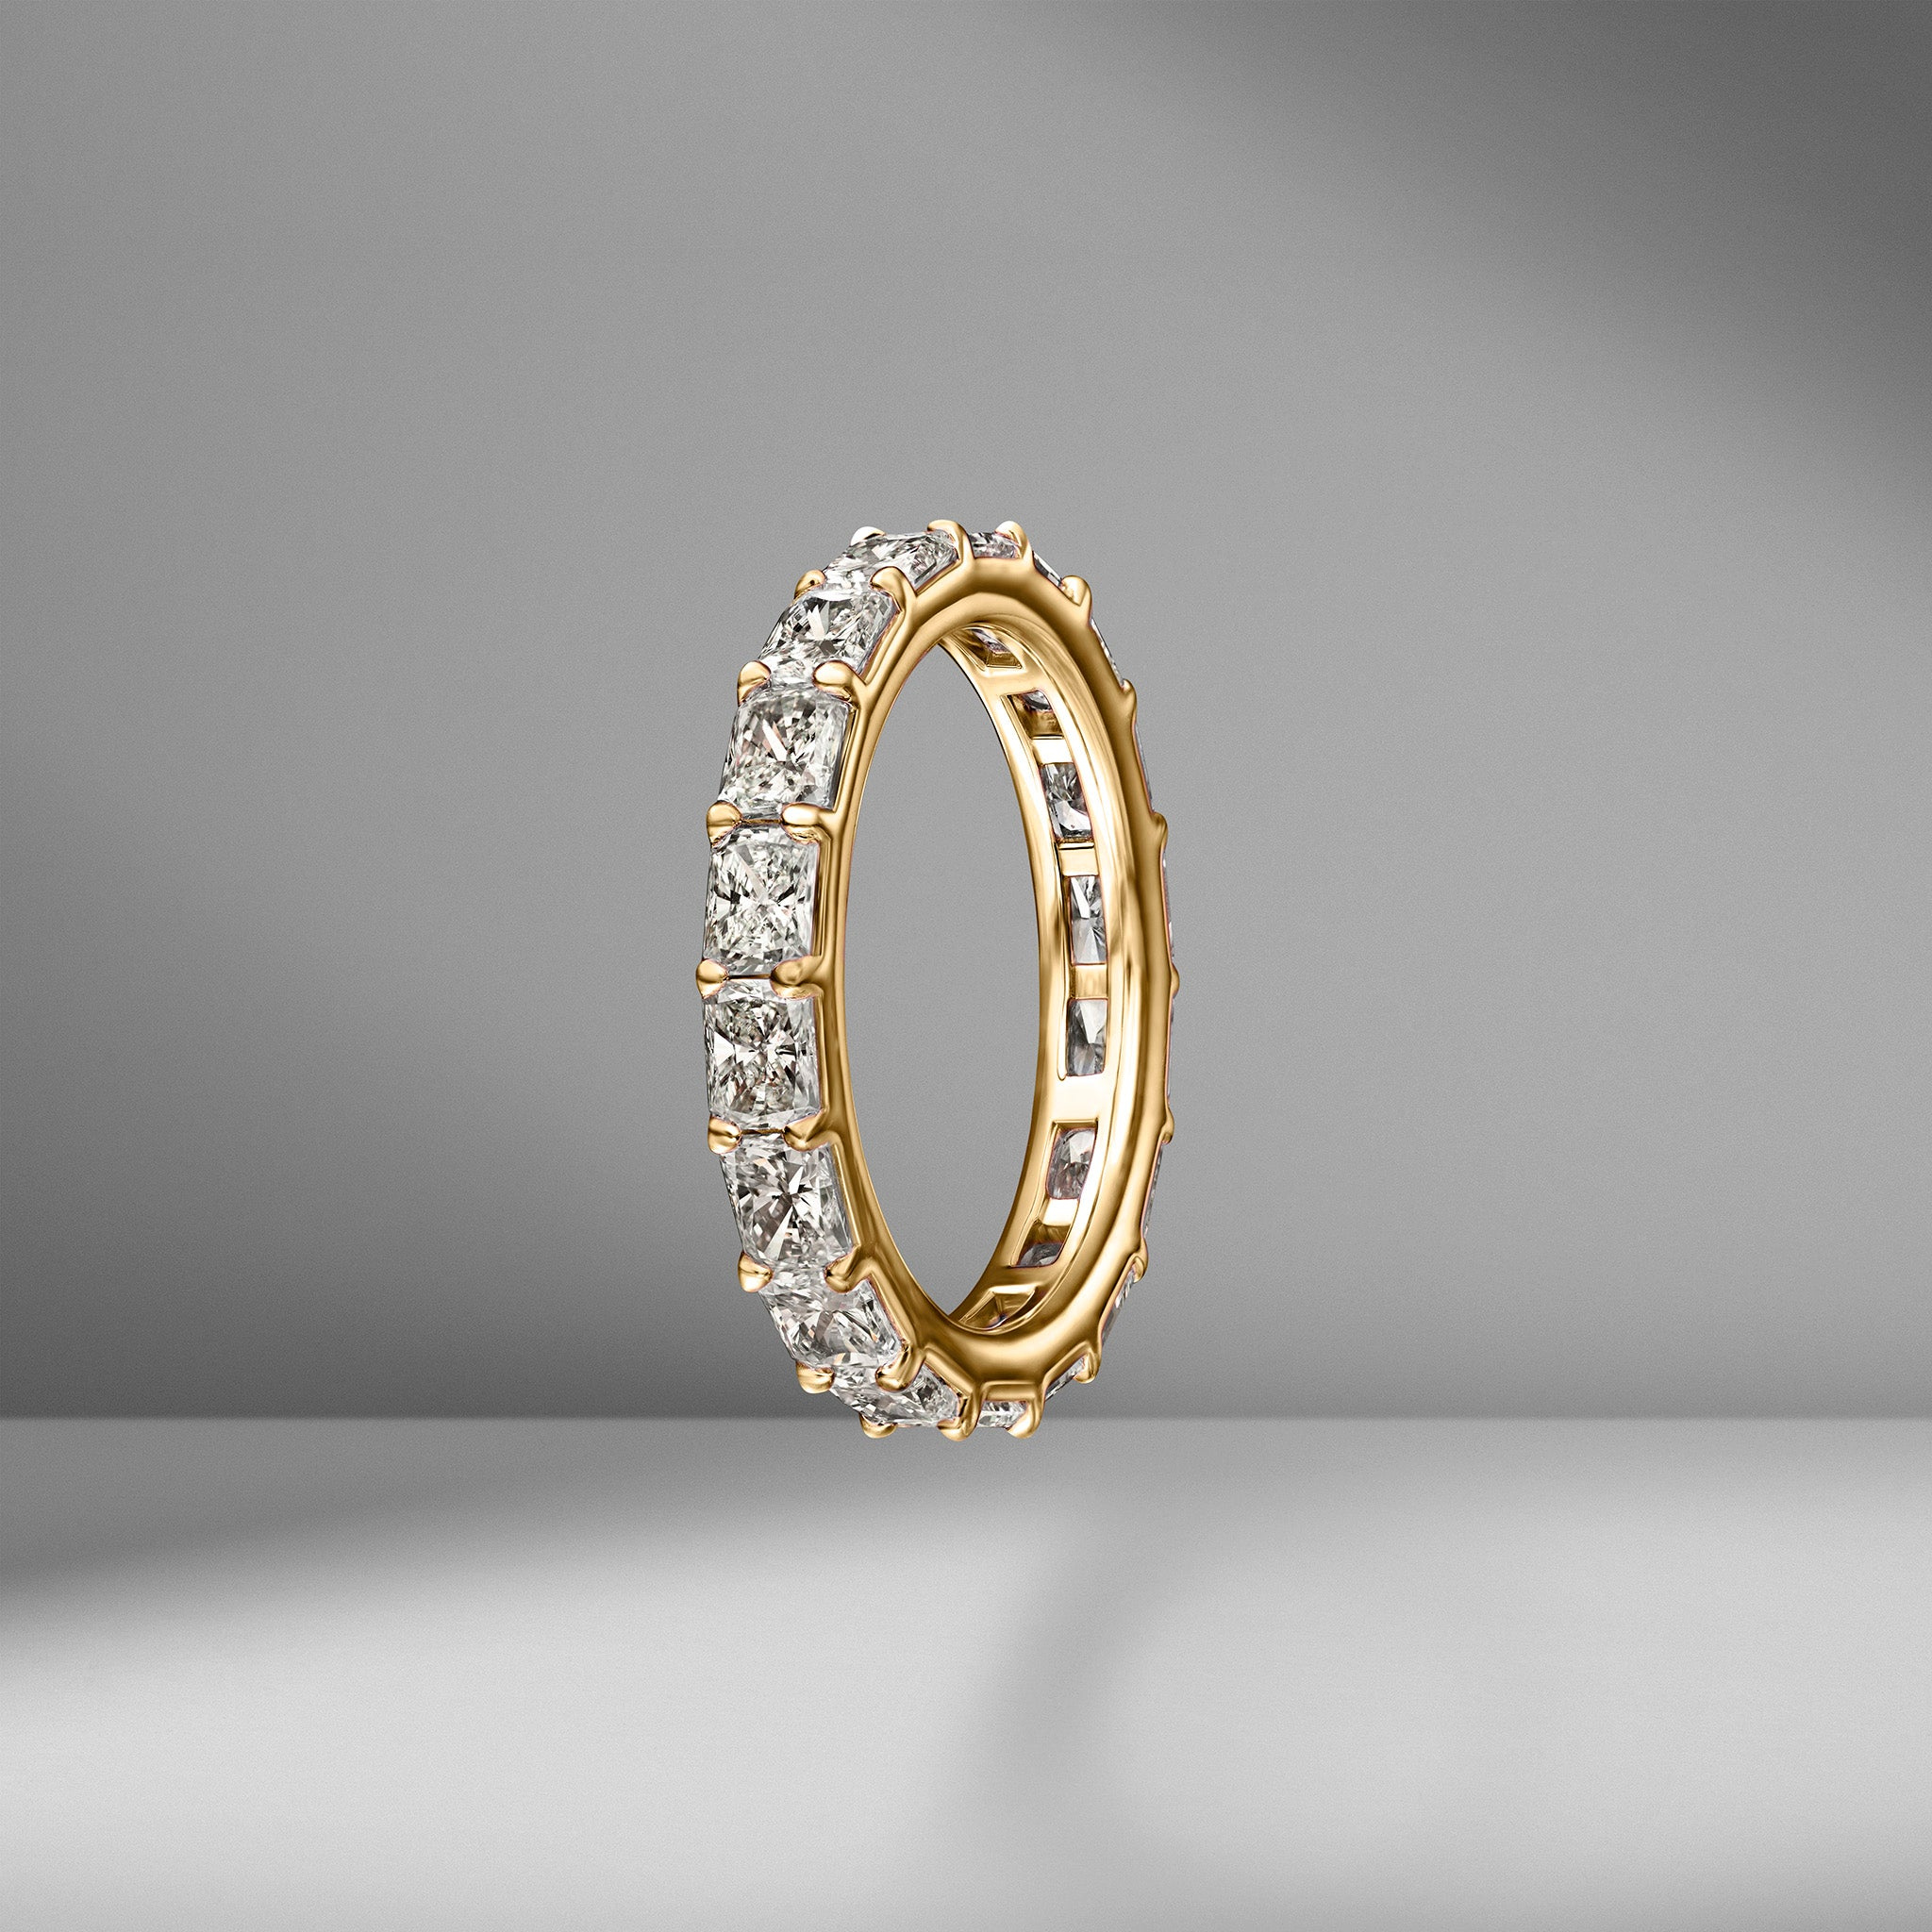 East-West Set Radiant Cut Eternity Band .15